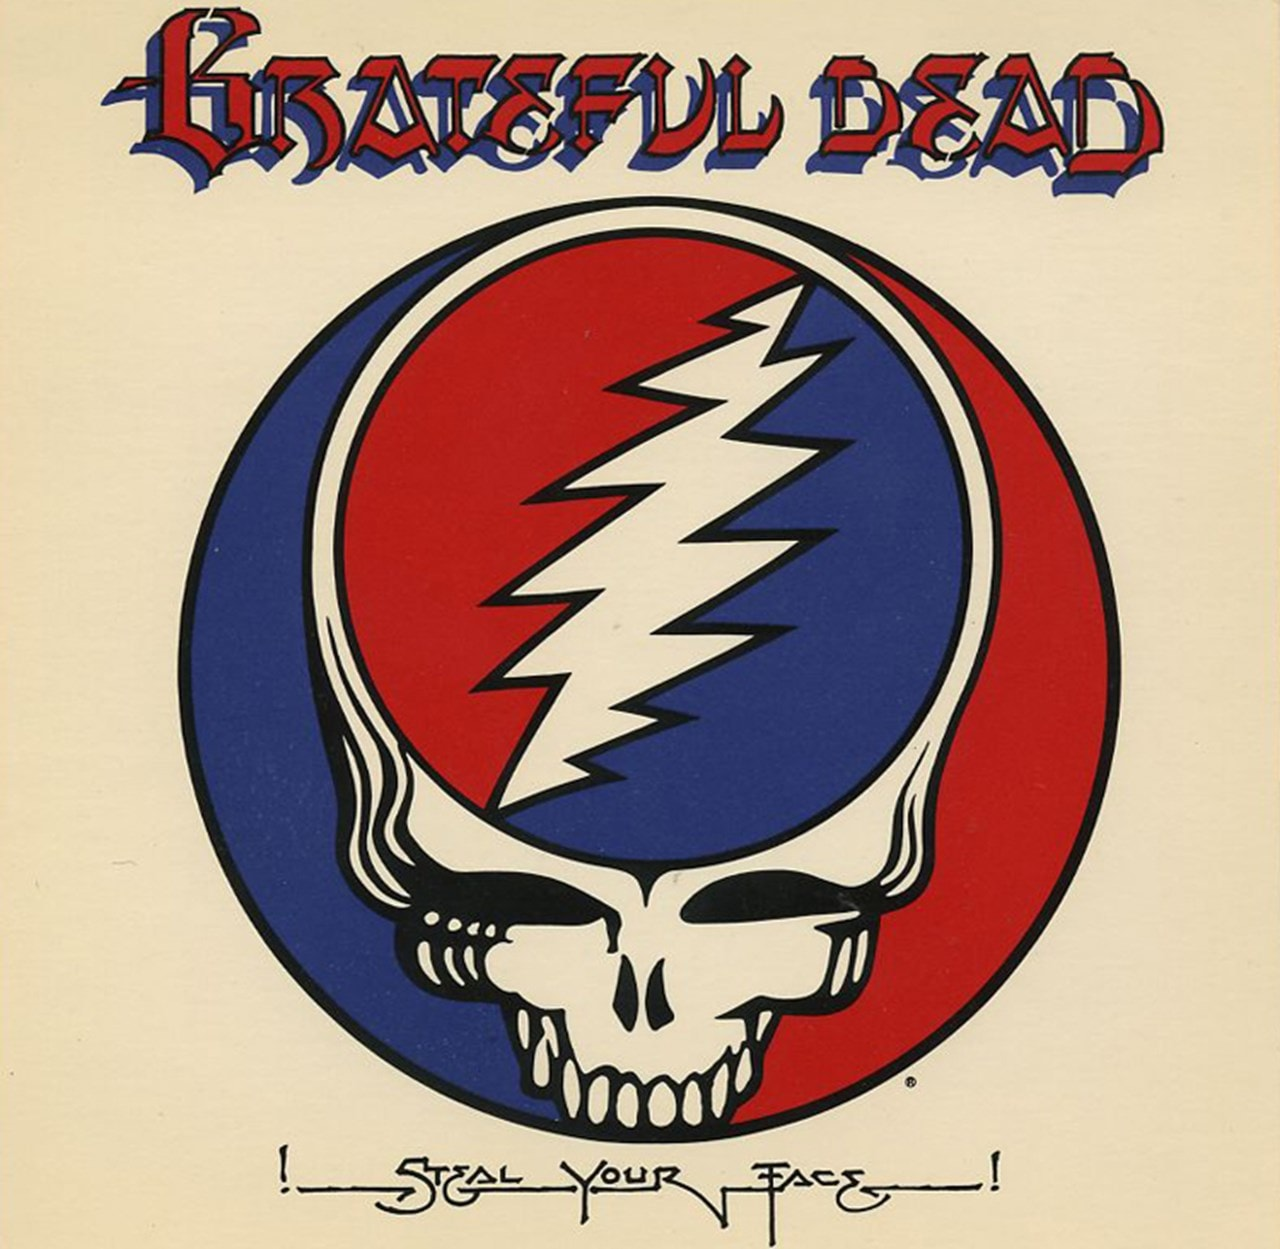 Steal Your Face - 1